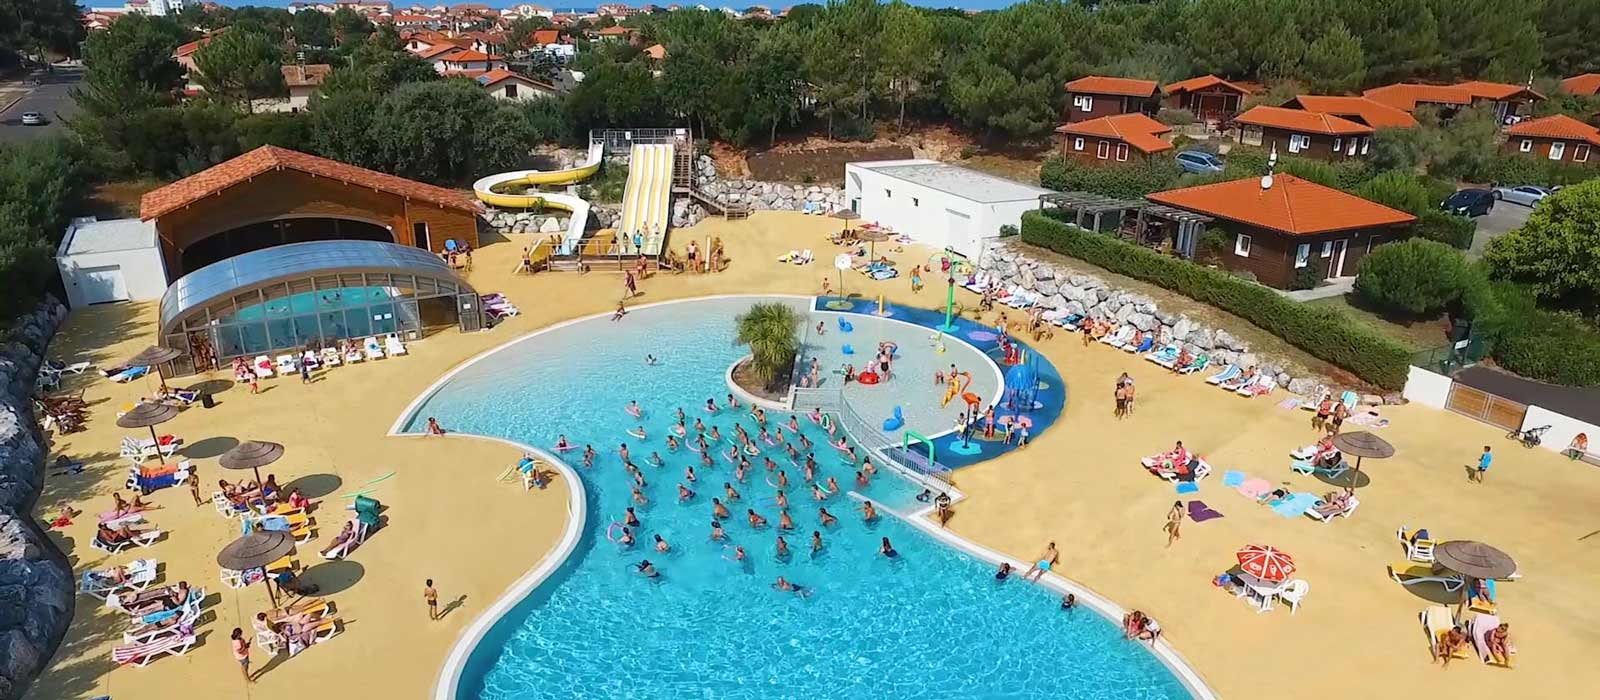 Camping La Plage - Camping Mimizan 4 Stars Seaside With Pool encequiconcerne Camping Mimizan Avec Piscine